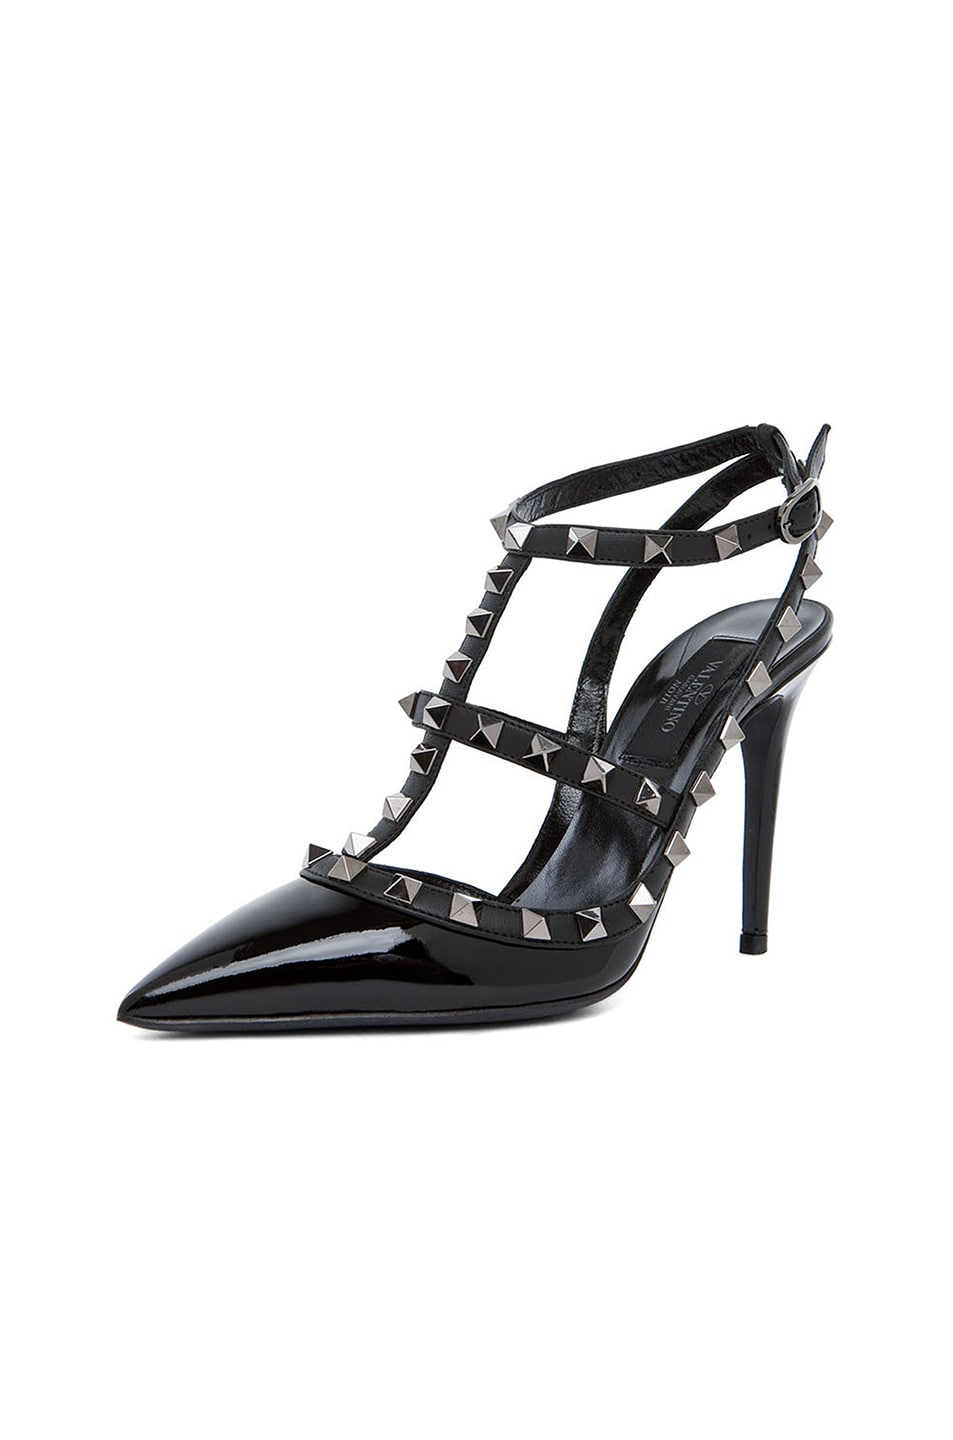 Image 2 of Valentino Rockstud Patent Slingbacks T.100 in Black